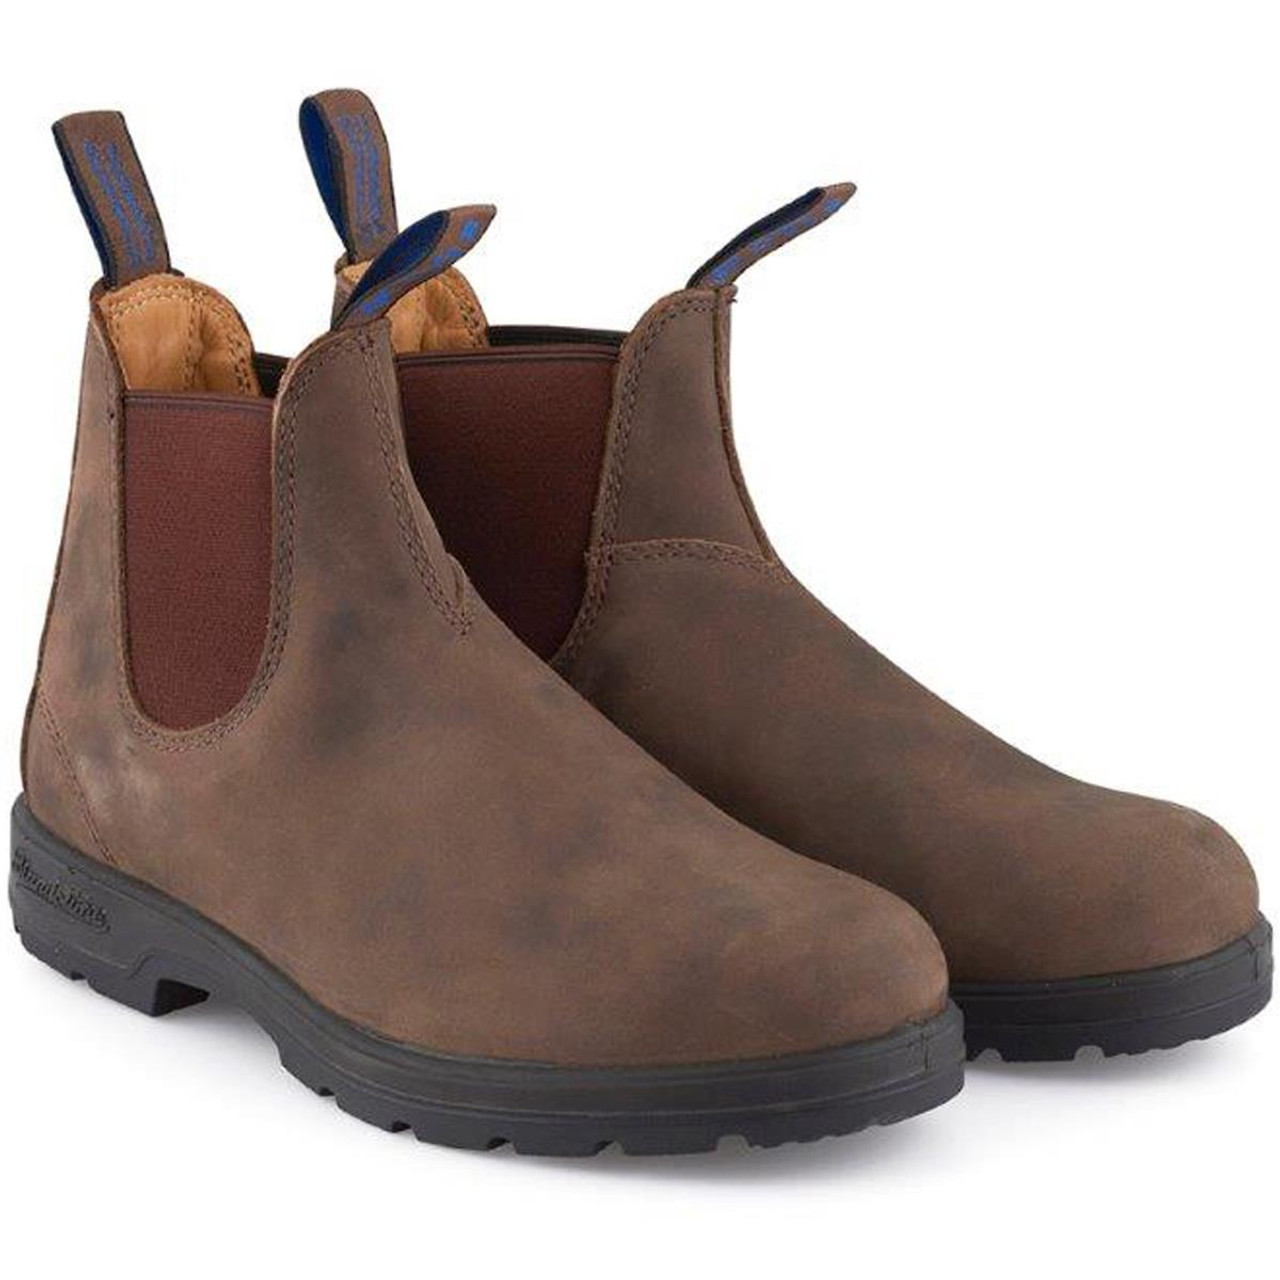 Blundstone Unisex Thermal 584 Chelsea Boot